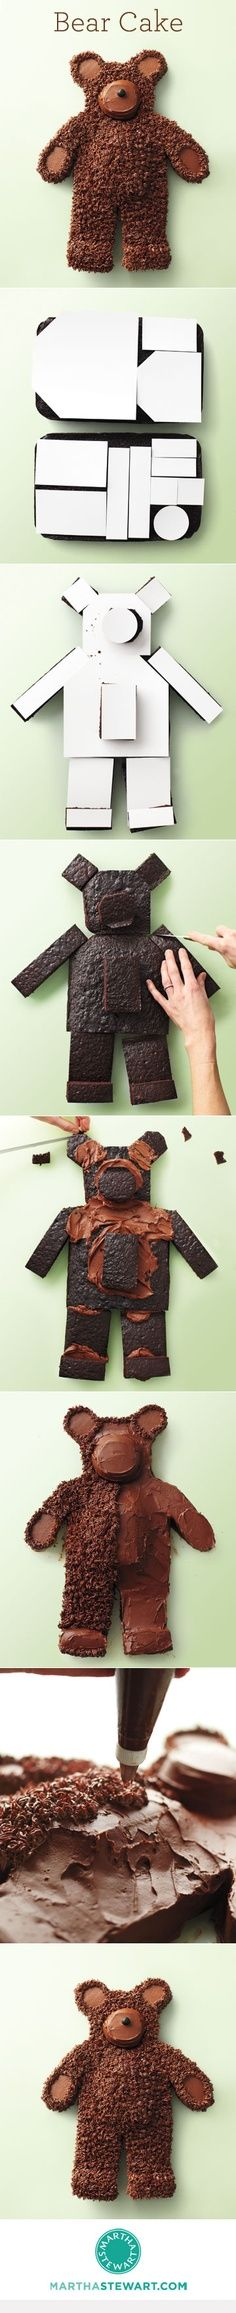 How to Make a Bear Cake